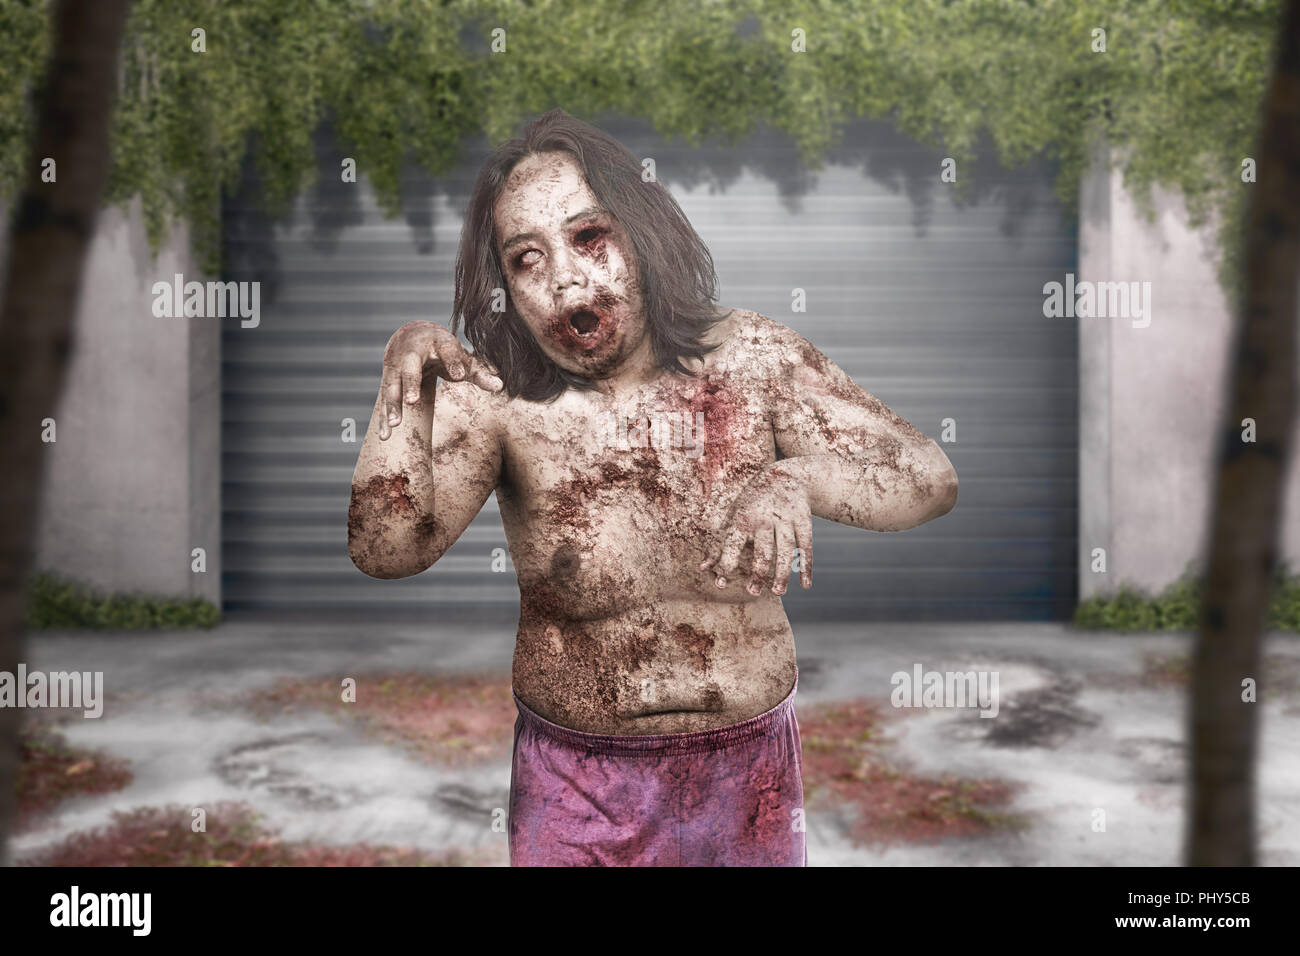 Terrible zombie man with wound on his body haunting abandoned city Stock Photo